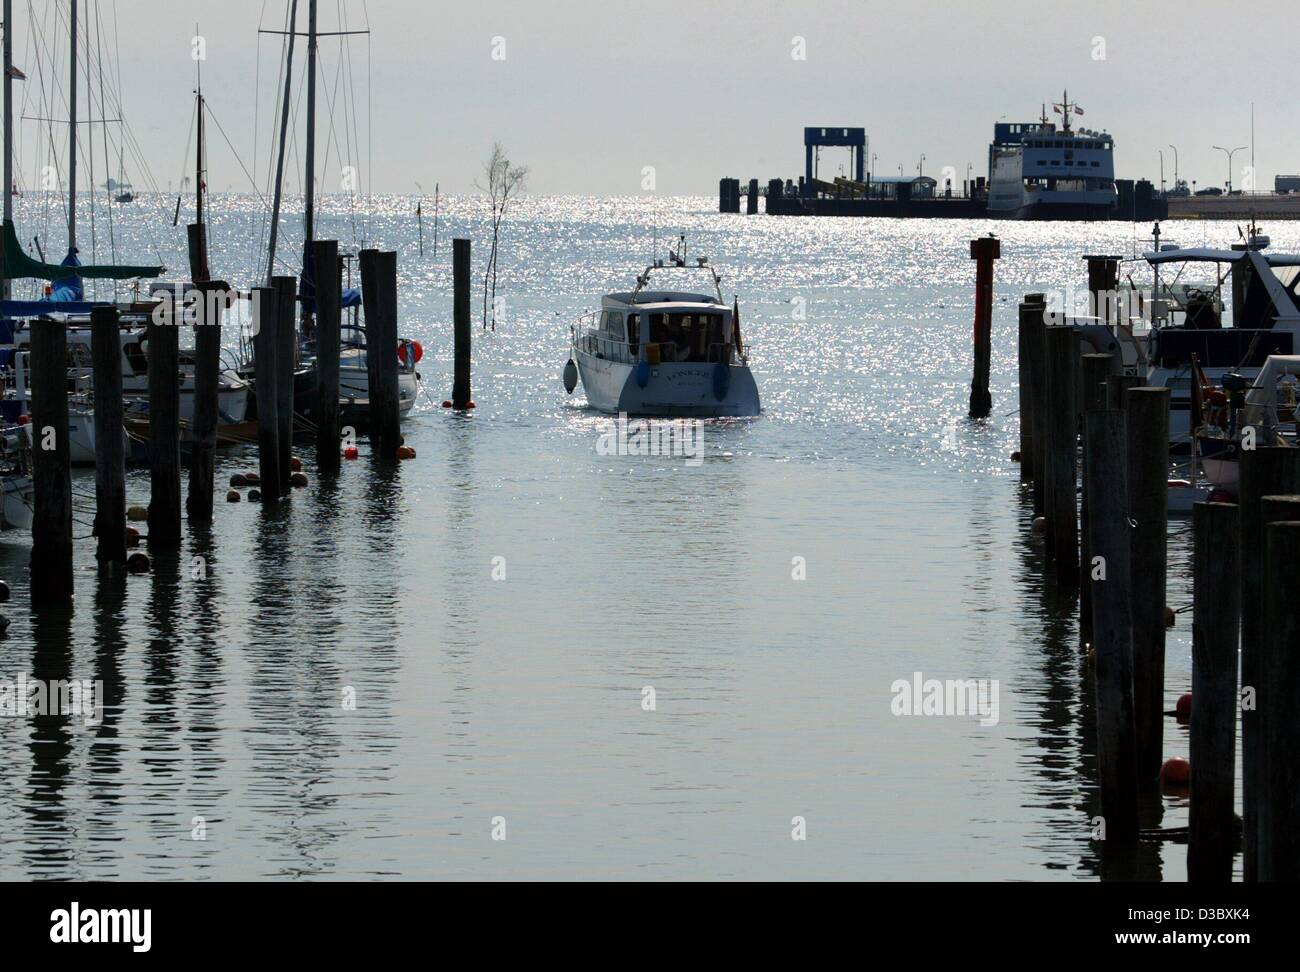 (dpa) - A yacht departs from the marina in Wittduen on the North Sea island Amrum, Germany, 6 August 2003. A cool - Stock Image